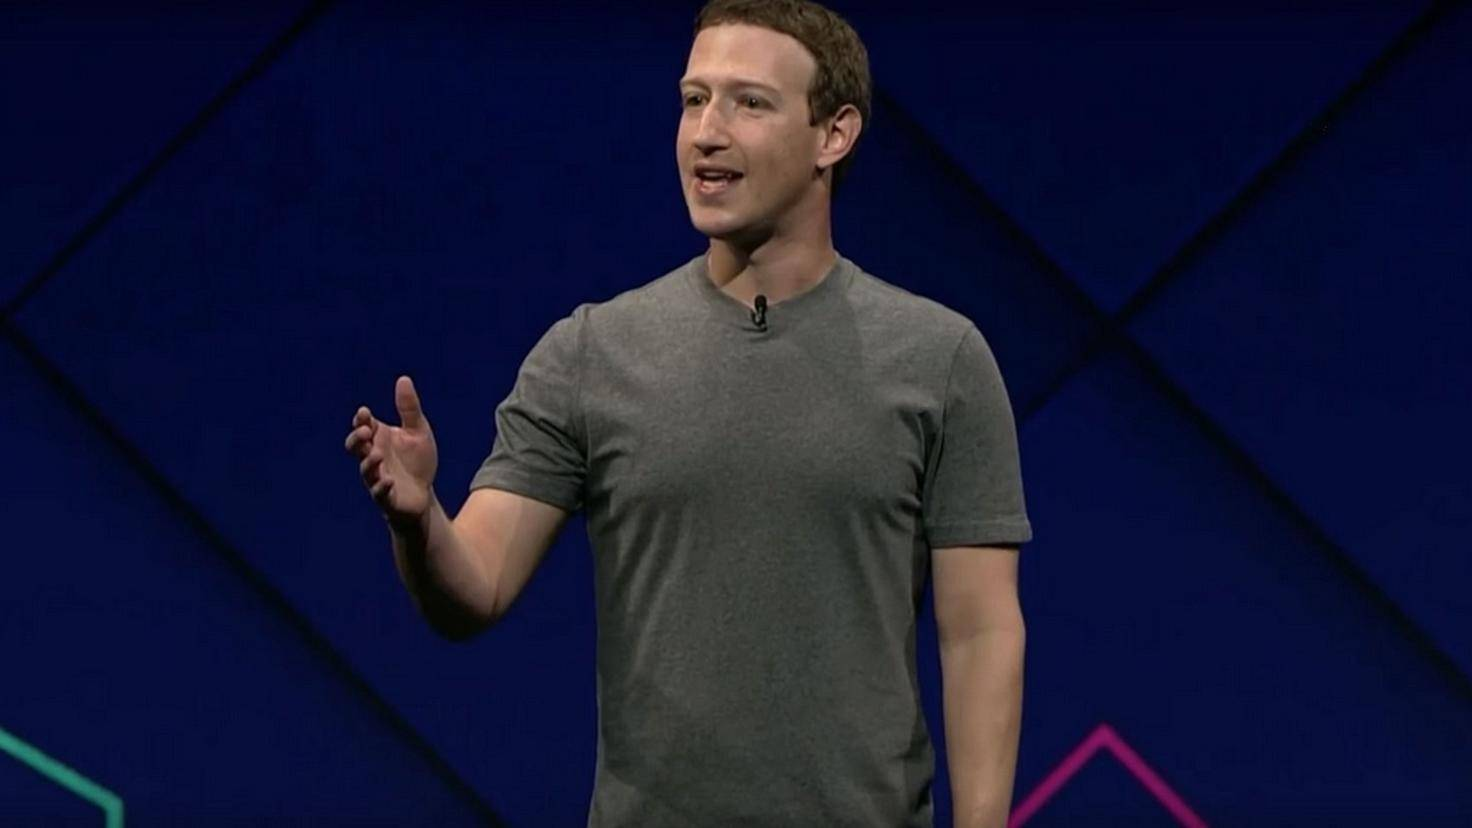 Zuckerberg-Facebook-F8